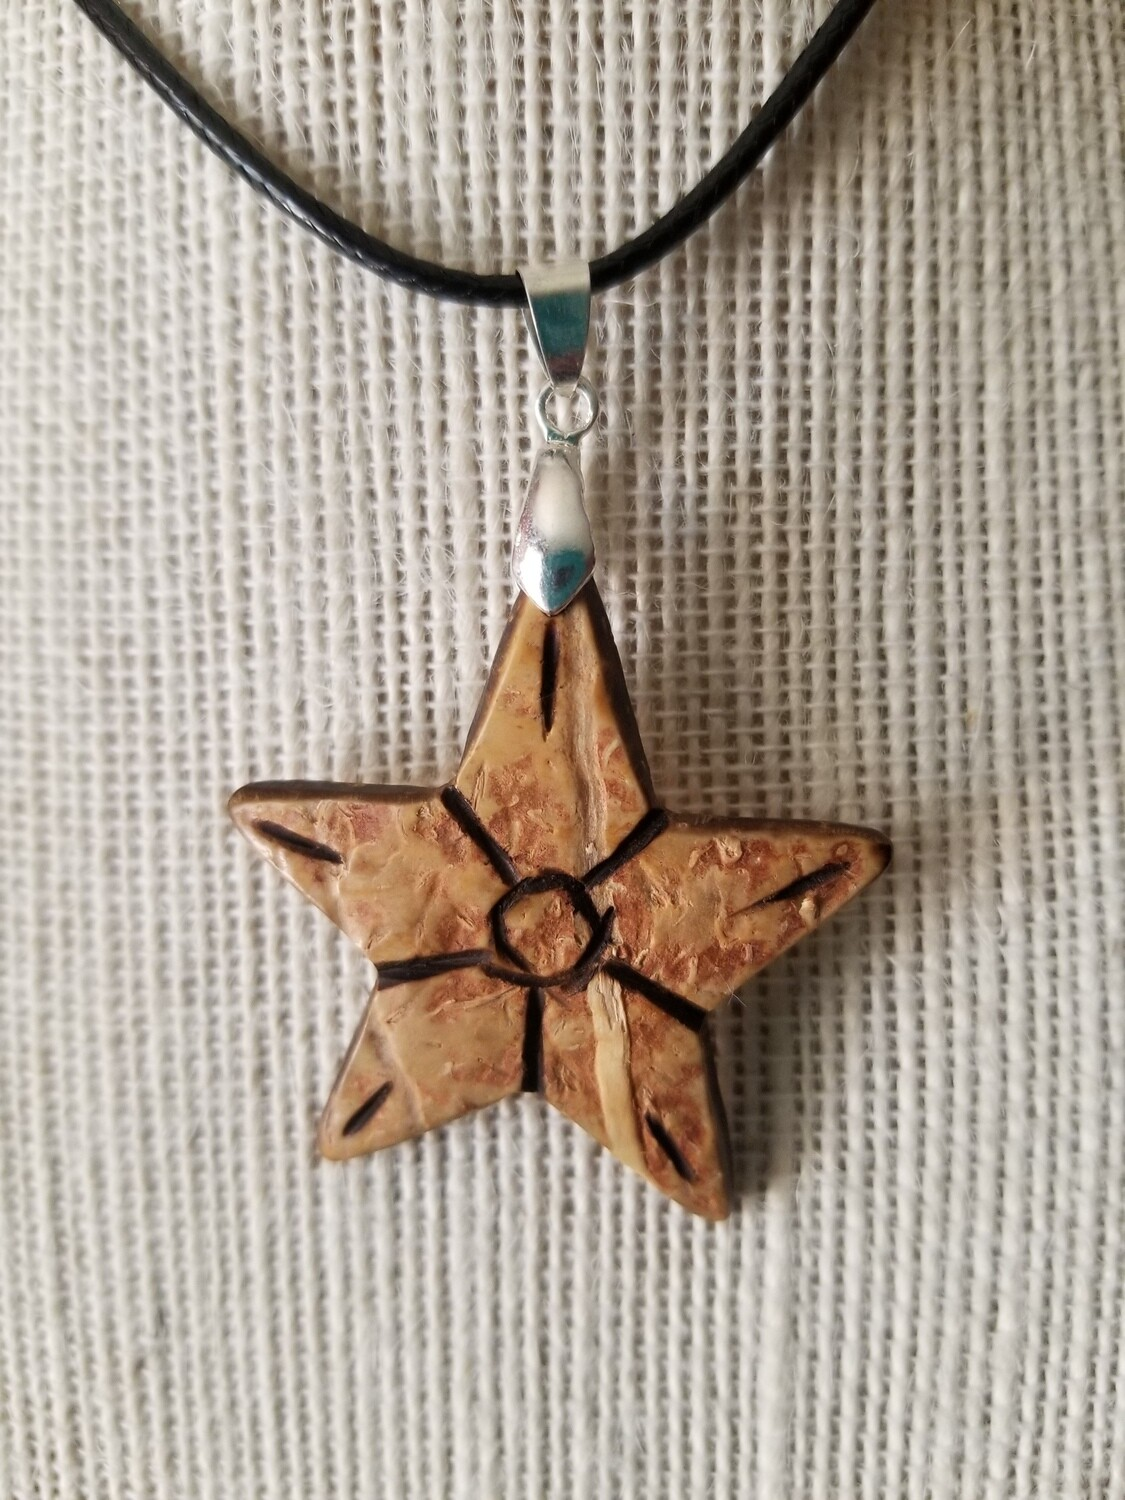 Coconut Star Necklace #3